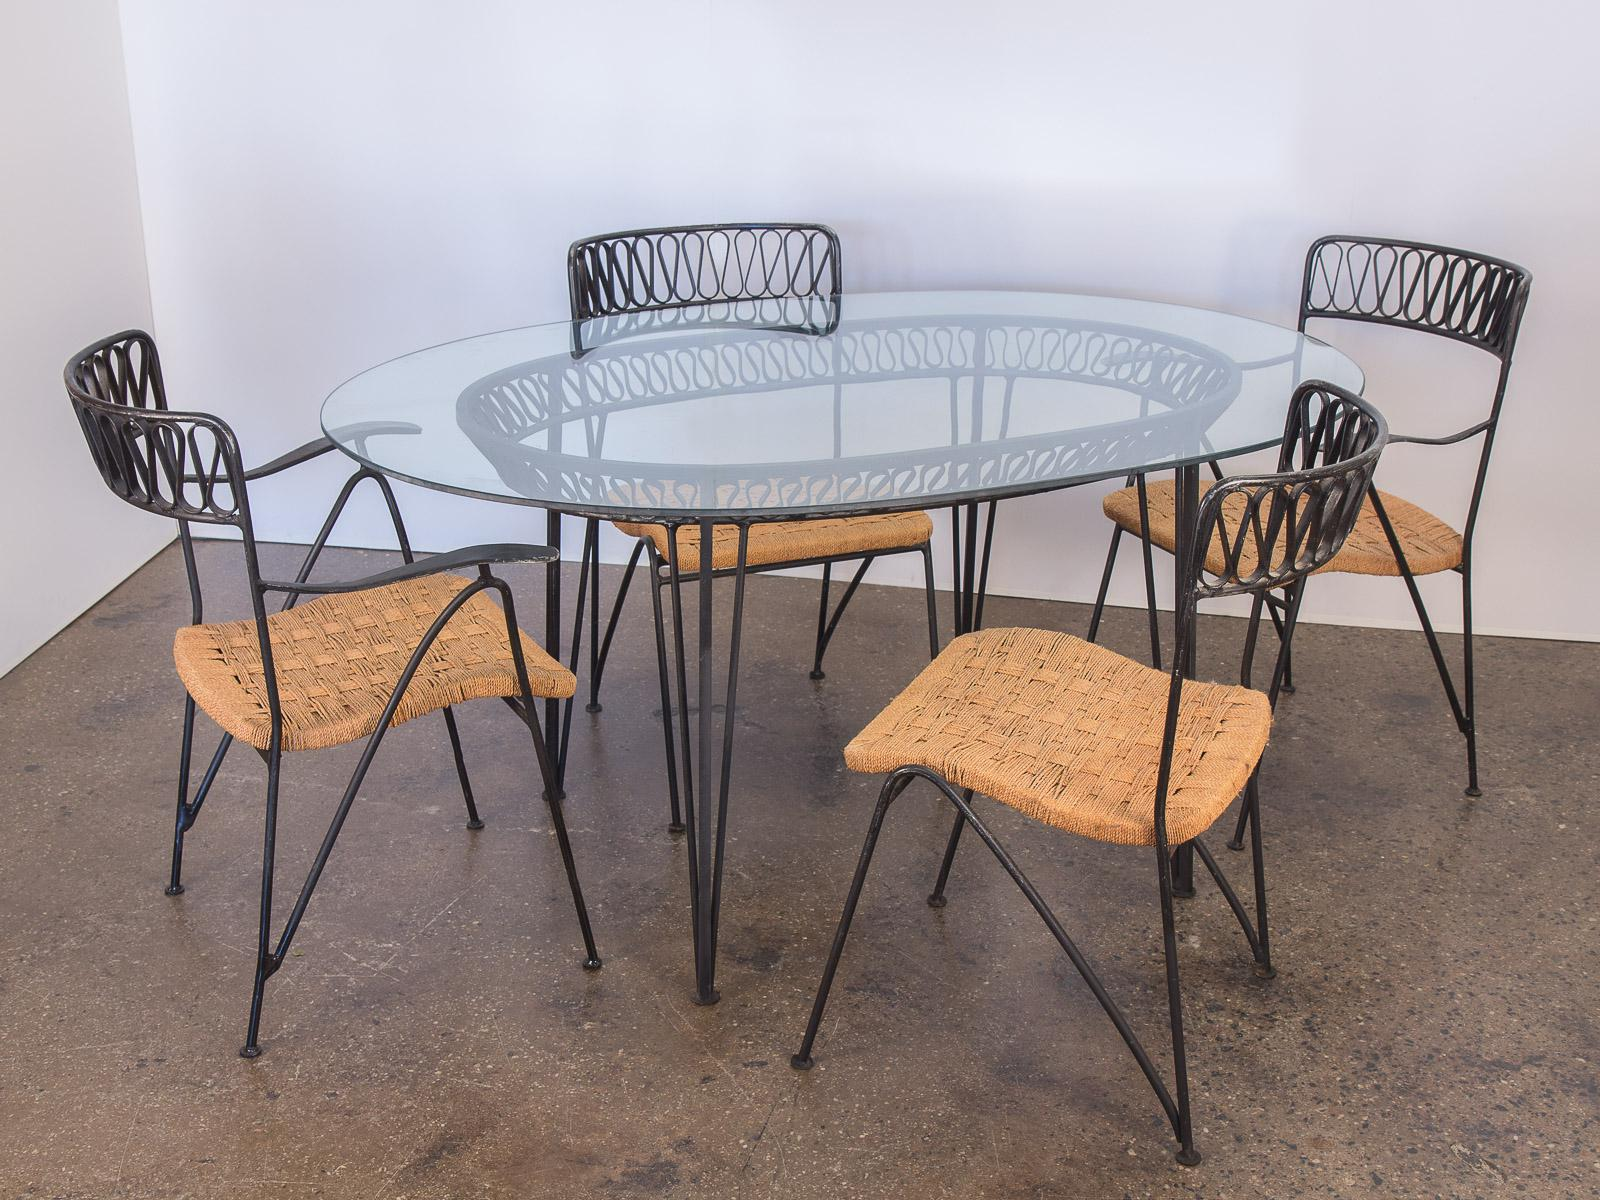 Bon Salterini Woven Ribbon Chairs And Table Patio Set   Image 2 Of 11